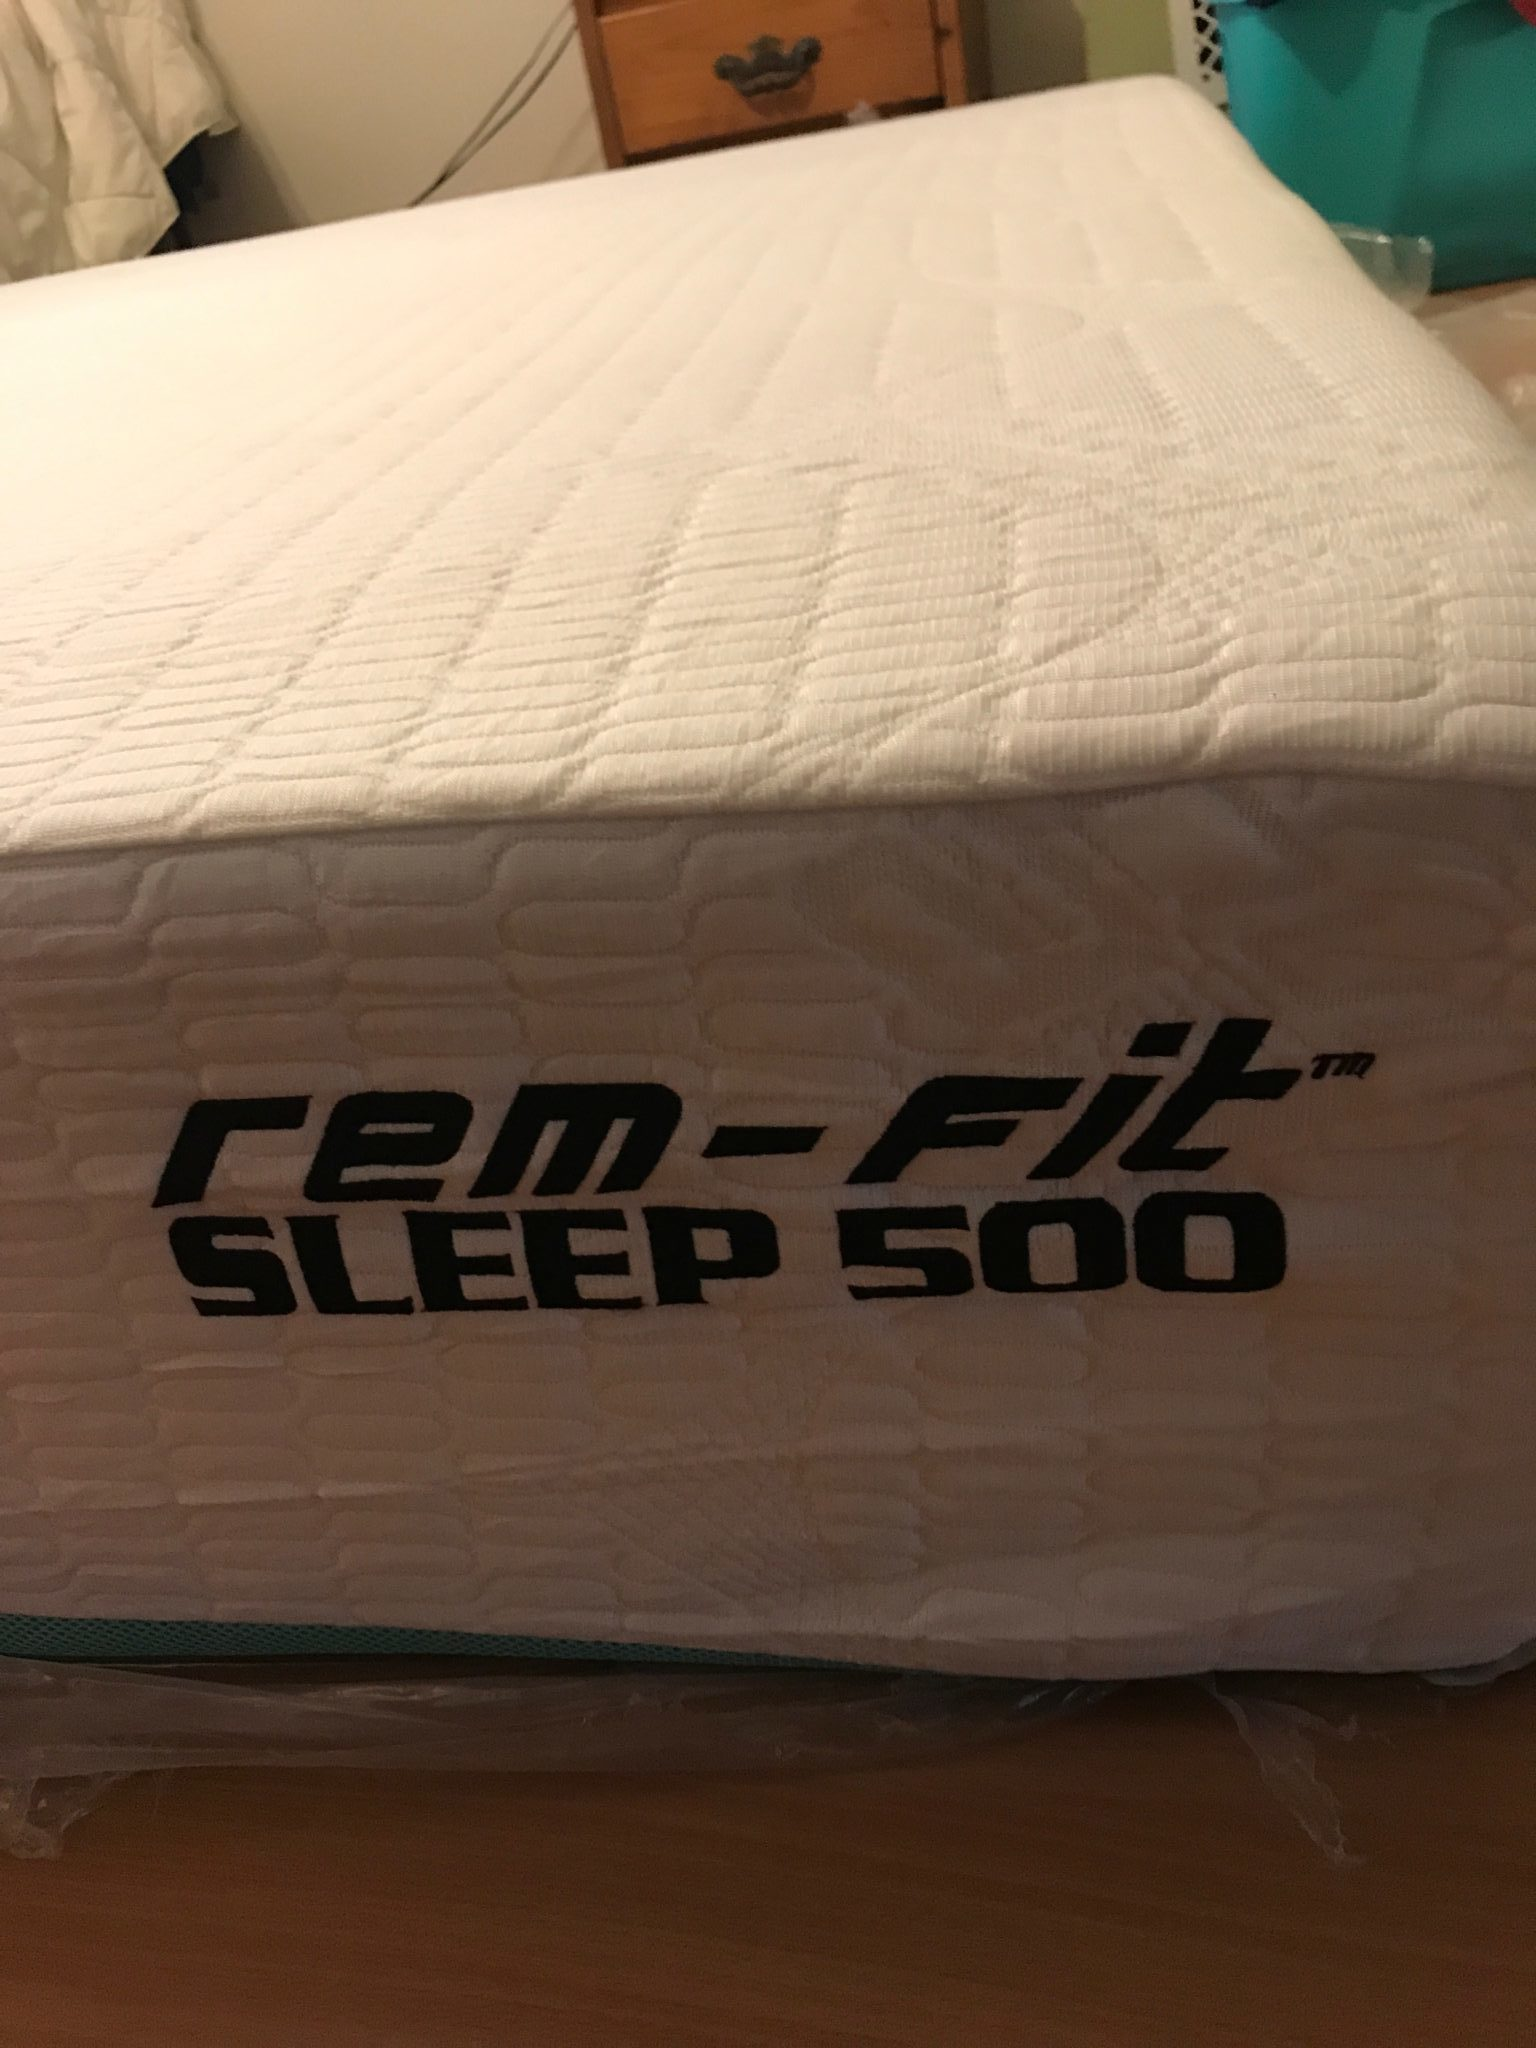 http://www.mattressjunkie.com/rem-fit-sleep-400-mattress-review/